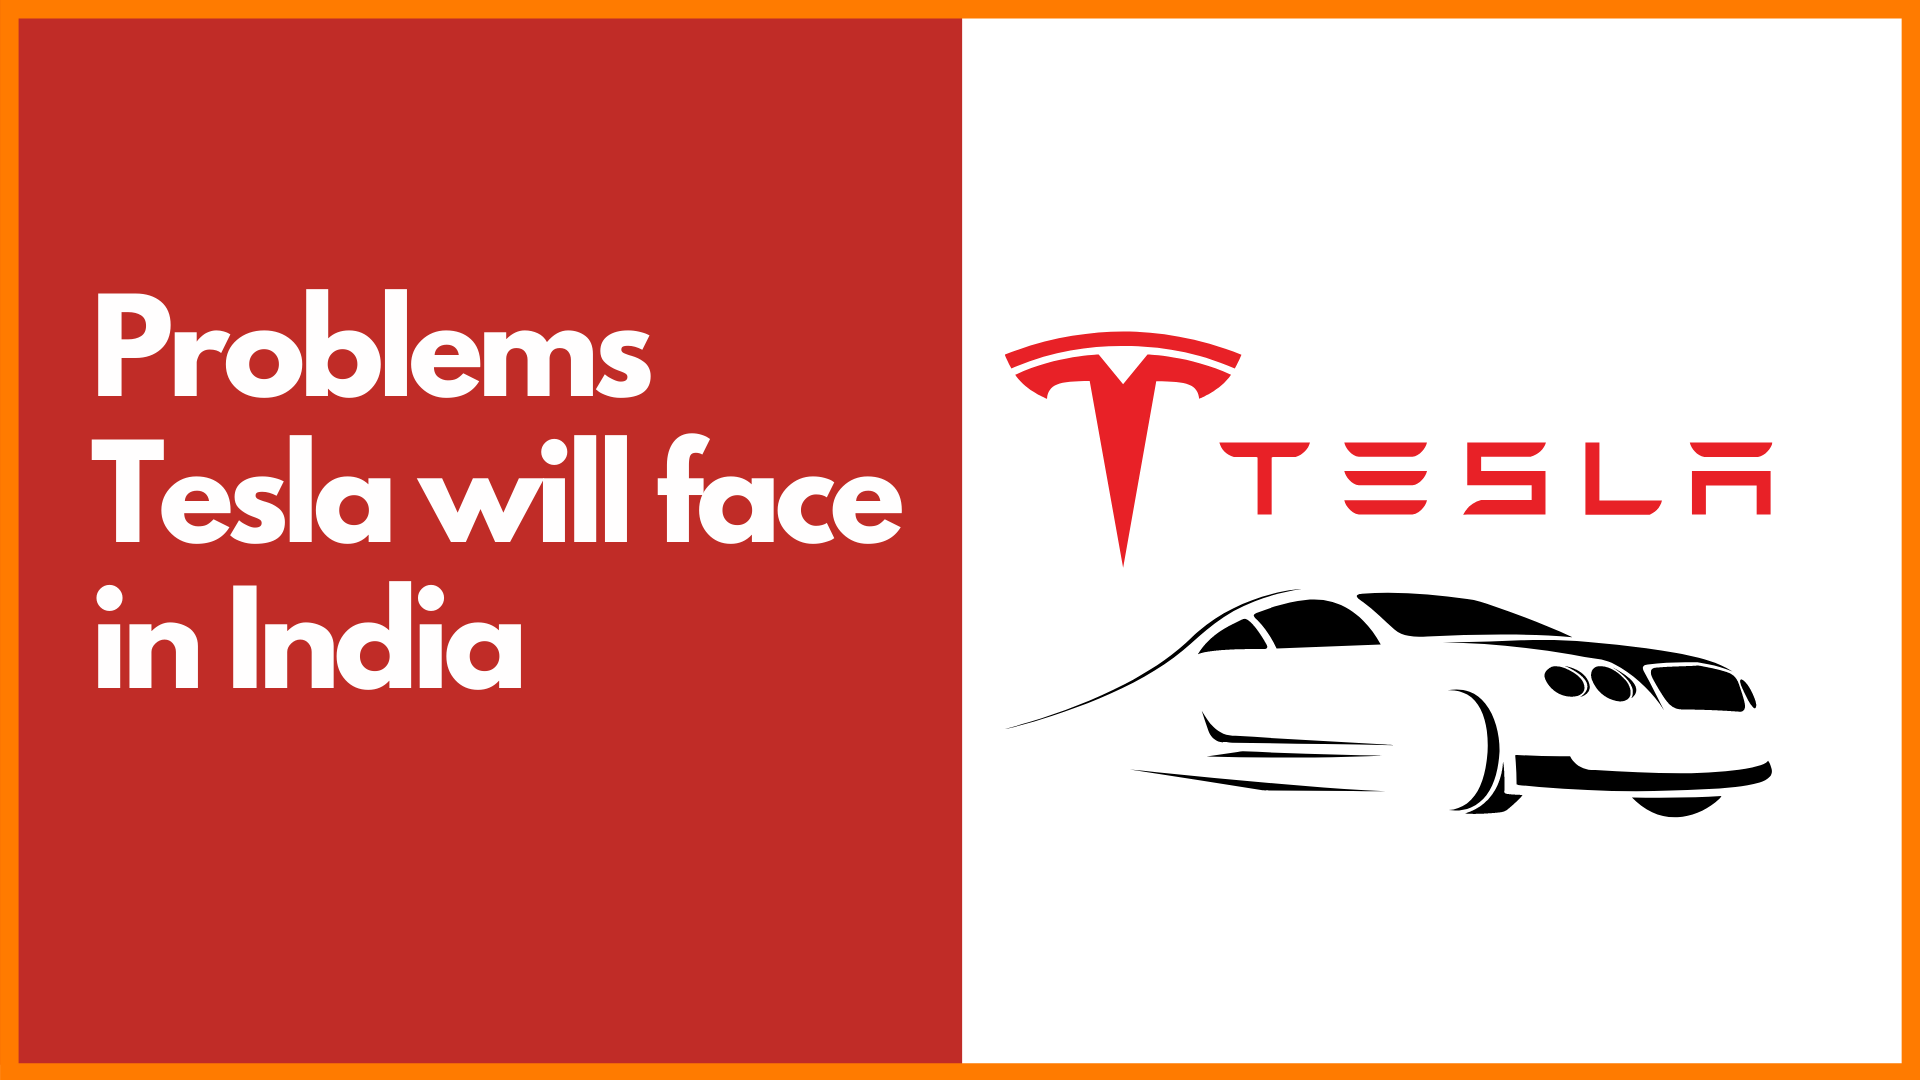 Problems Tesla will face in India